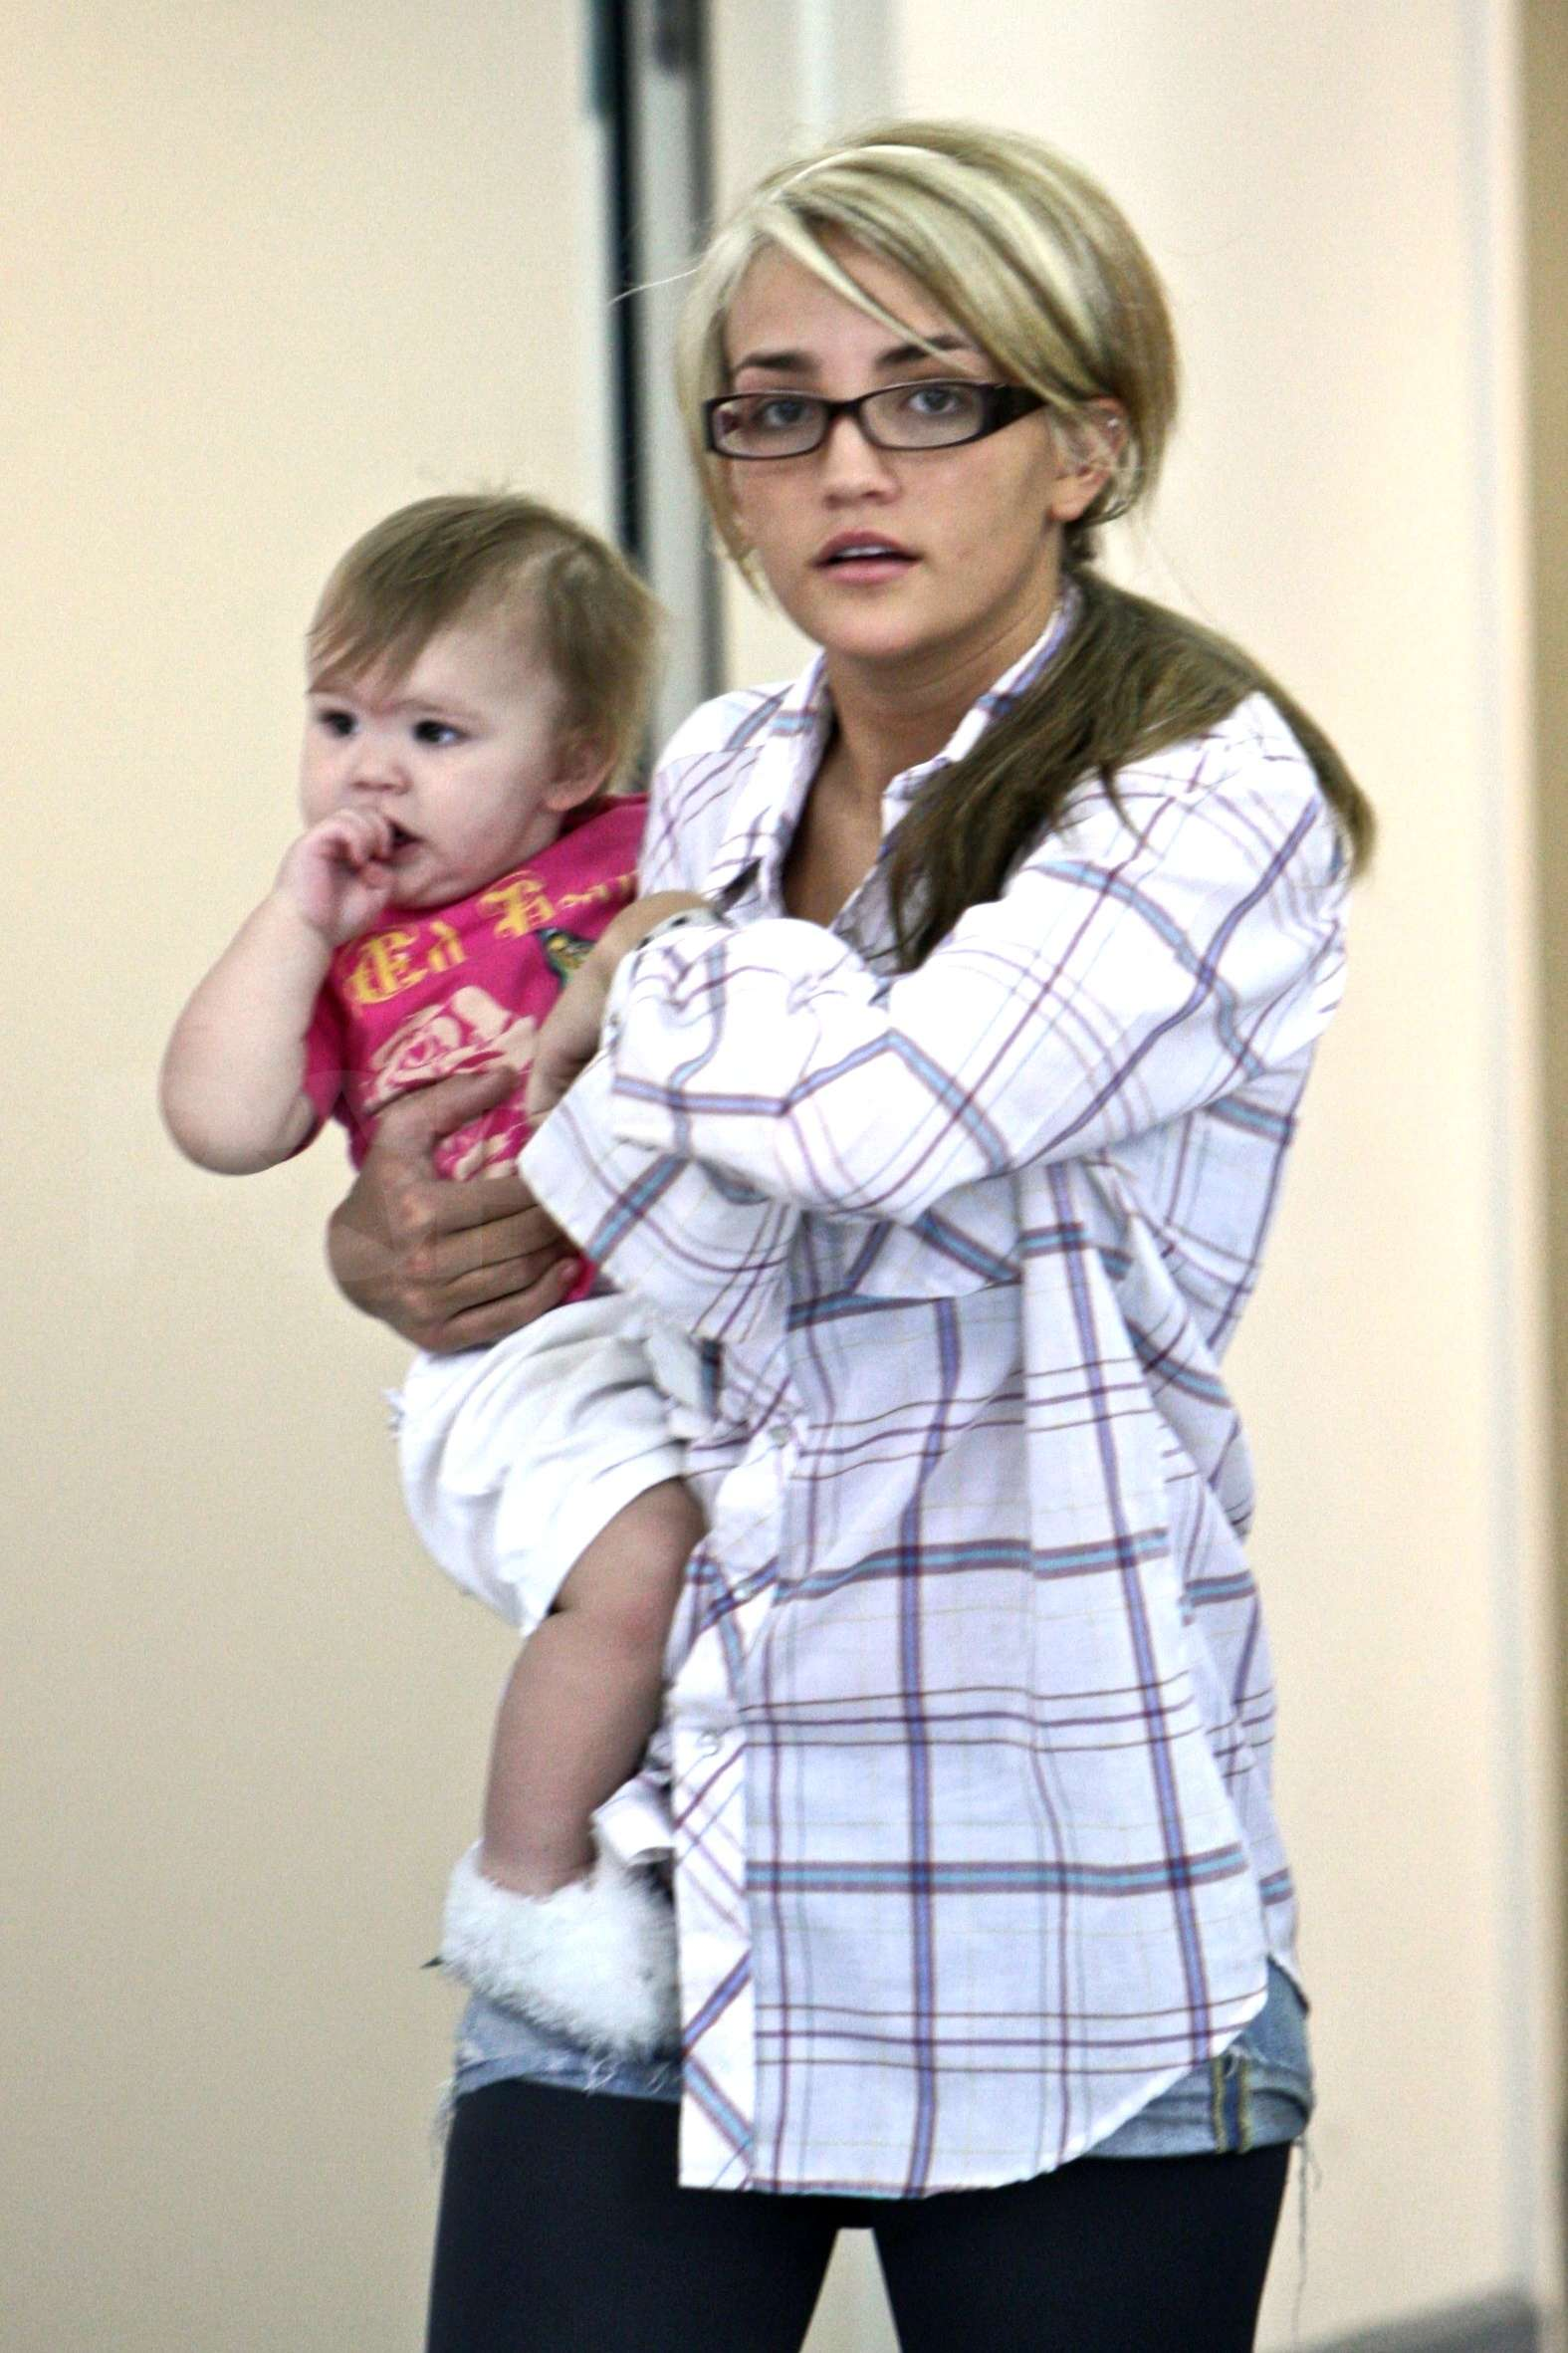 ©NATIONAL PHOTO GROUP Jamie Lynn Spears makes her way through LAX airport with baby Maddie and mom Lynn. Job: 042609J16 EXCLUSIVE April 24, 2009 Los Angeles, CA nationalphotogroup.com *** 750£ MIINIMUM USAGE FOR UK ***